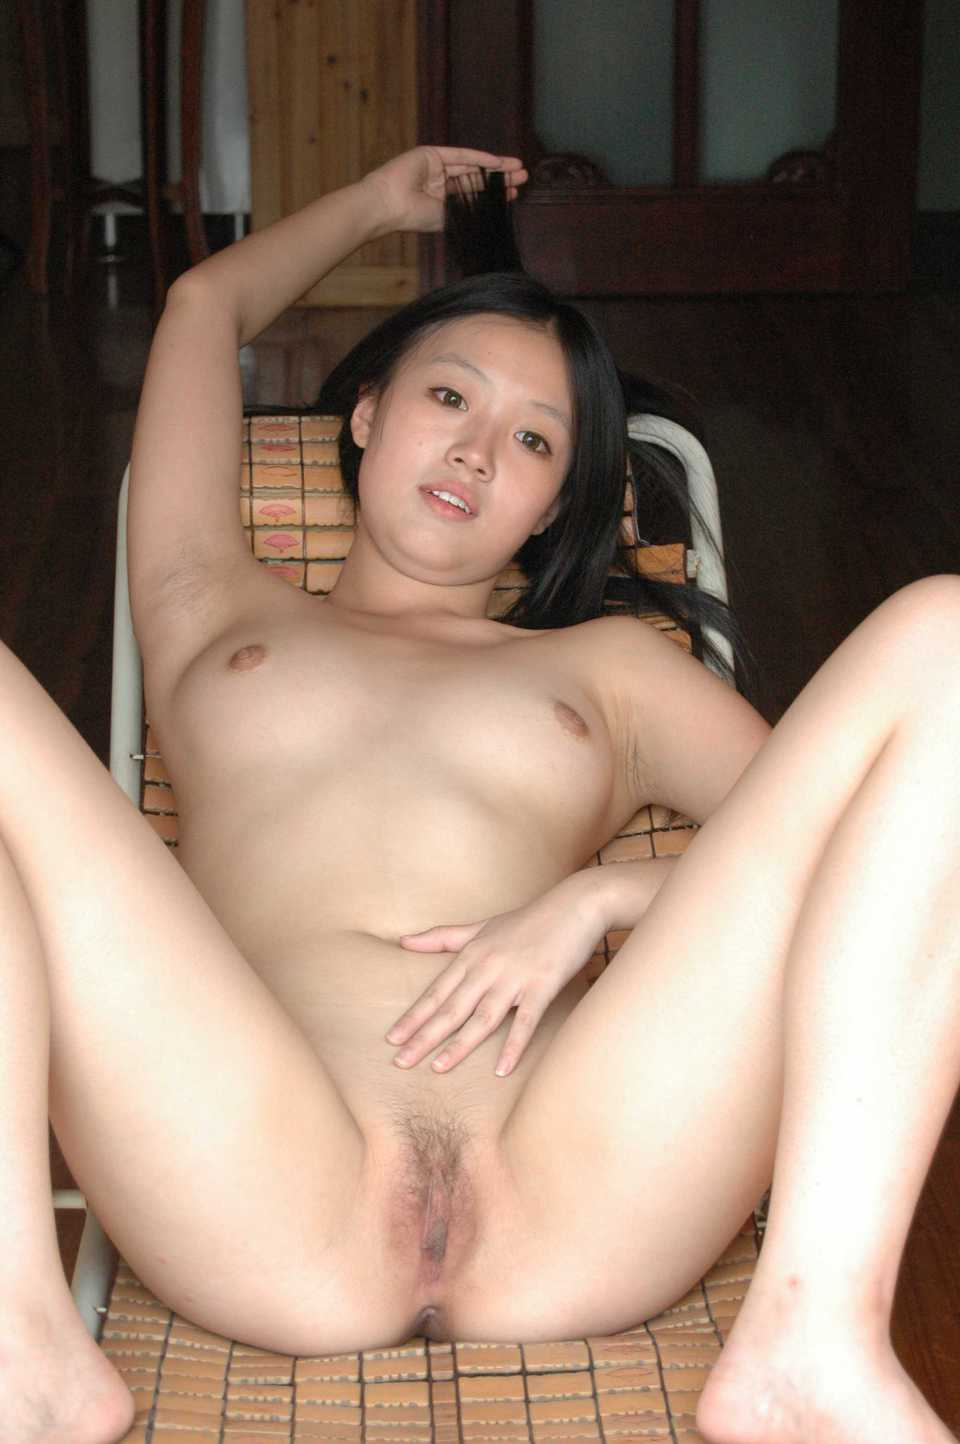 Chinese Innovates Loan Sharking Titties For Cash-5548